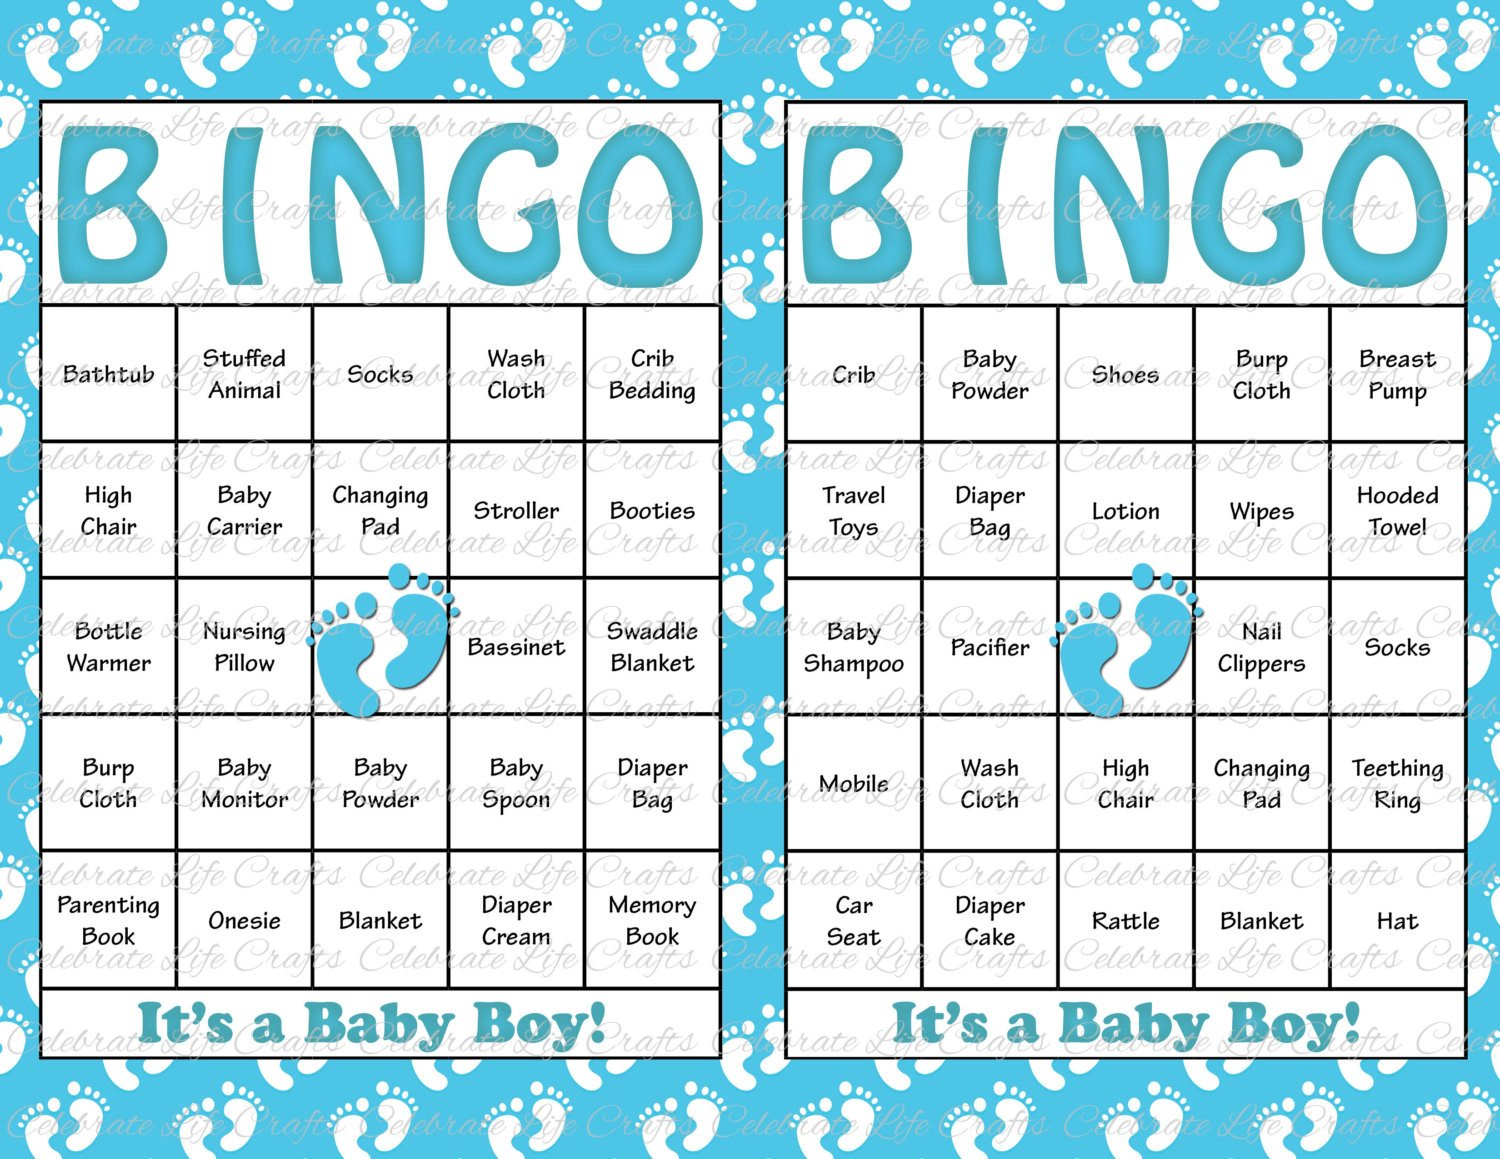 Baby Shower Bingo Template 30 Baby Shower Bingo Cards Printable Party by